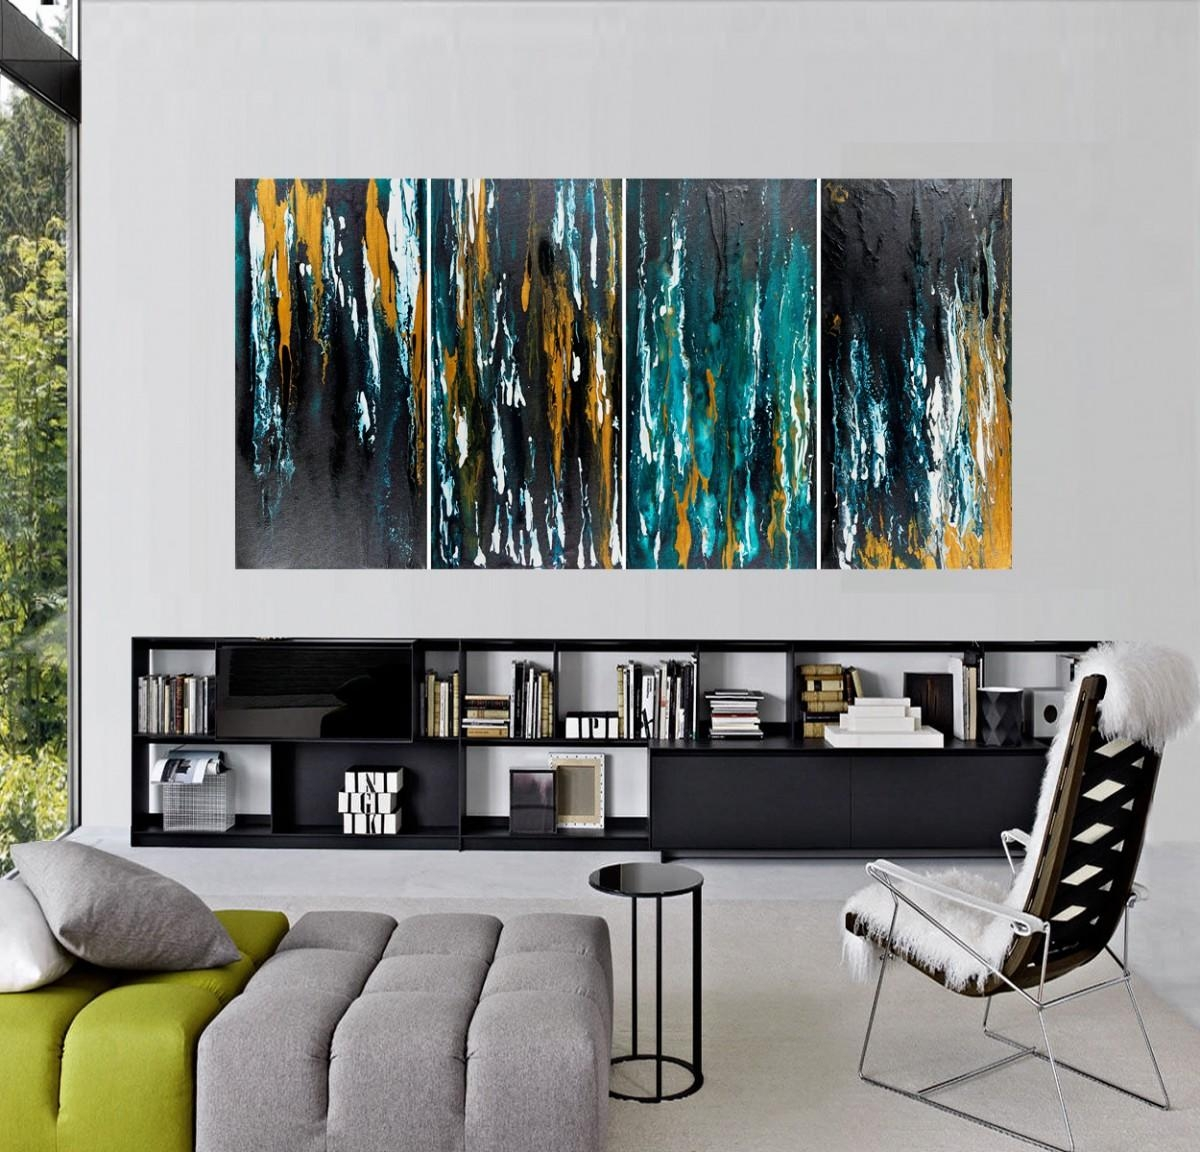 "First Snowfallqiqigallery 36""x24"" Original Modern Contemporary Intended For Turquoise And Black Wall Art (Image 4 of 20)"